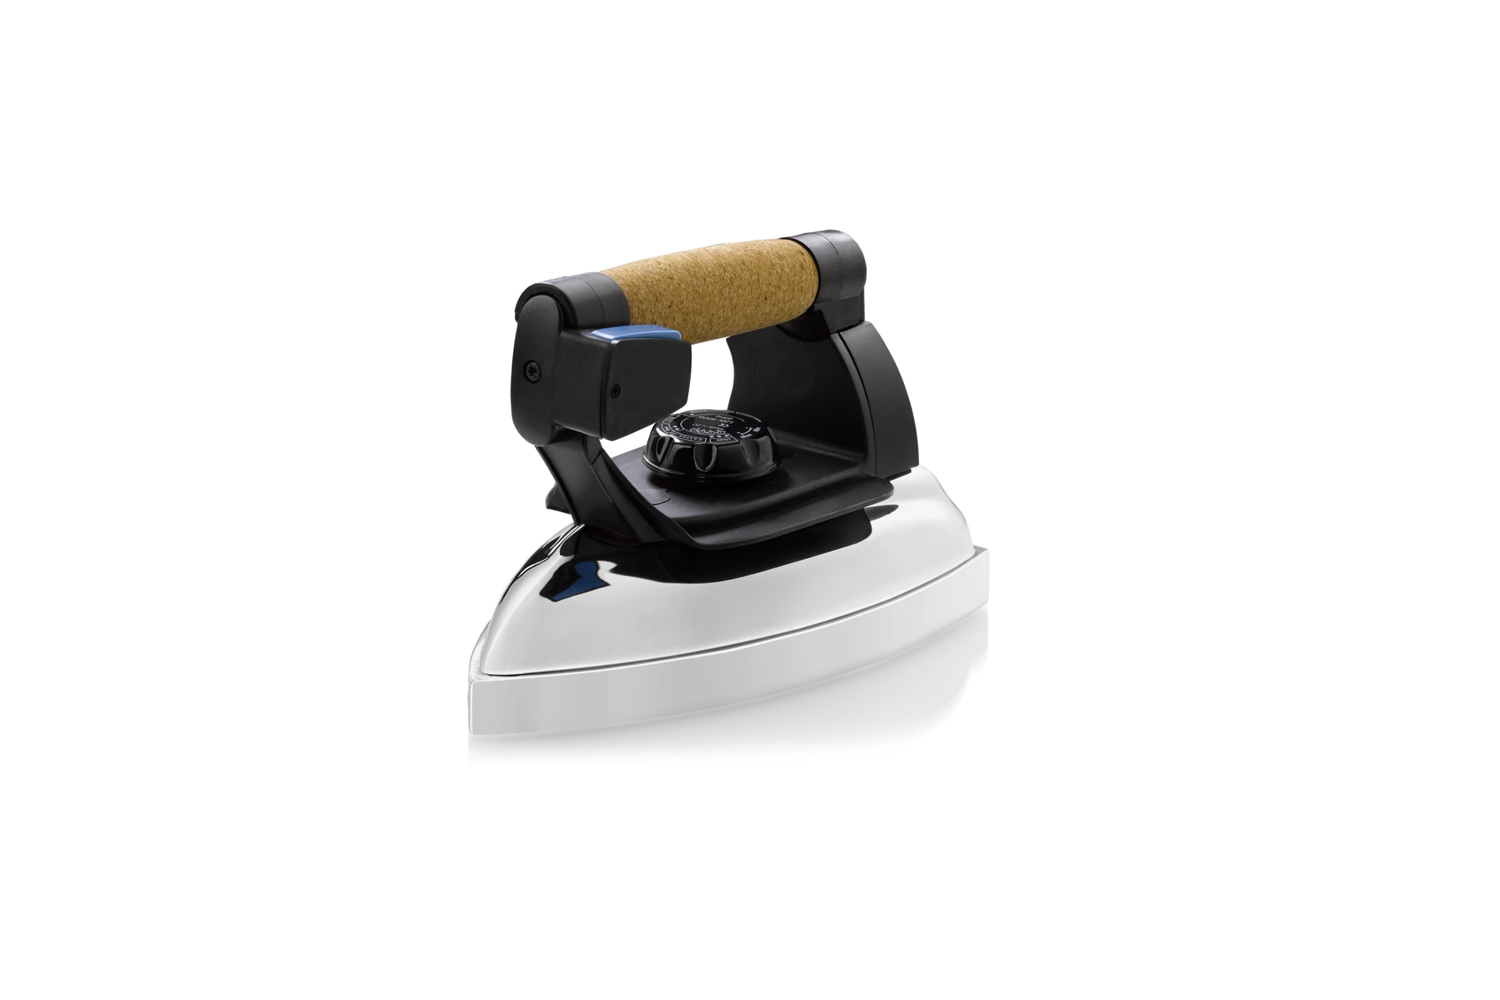 source a refurbished reliable 2000ir r classic iron for $96.75 at reliable. 15